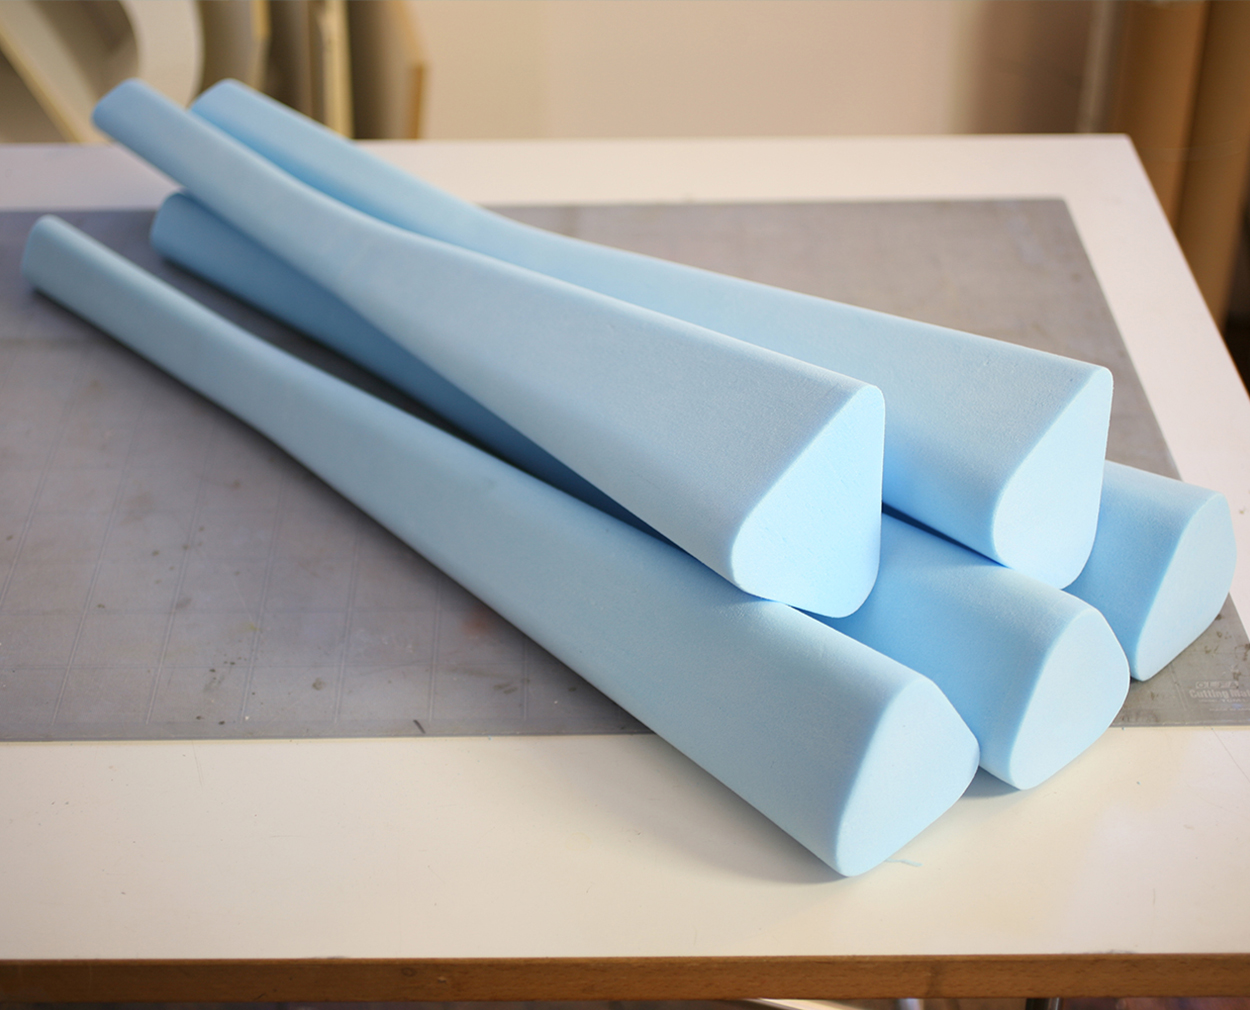 Finding the Form - Development consisted of numerous blue foam models to test ergonomic properties.It was important to create a concept, which felt appropriate for the heritage and legacy of the Games but at the same time light and modern, channelling the design aesthetic of Ed Barber and Jay Osgerby.